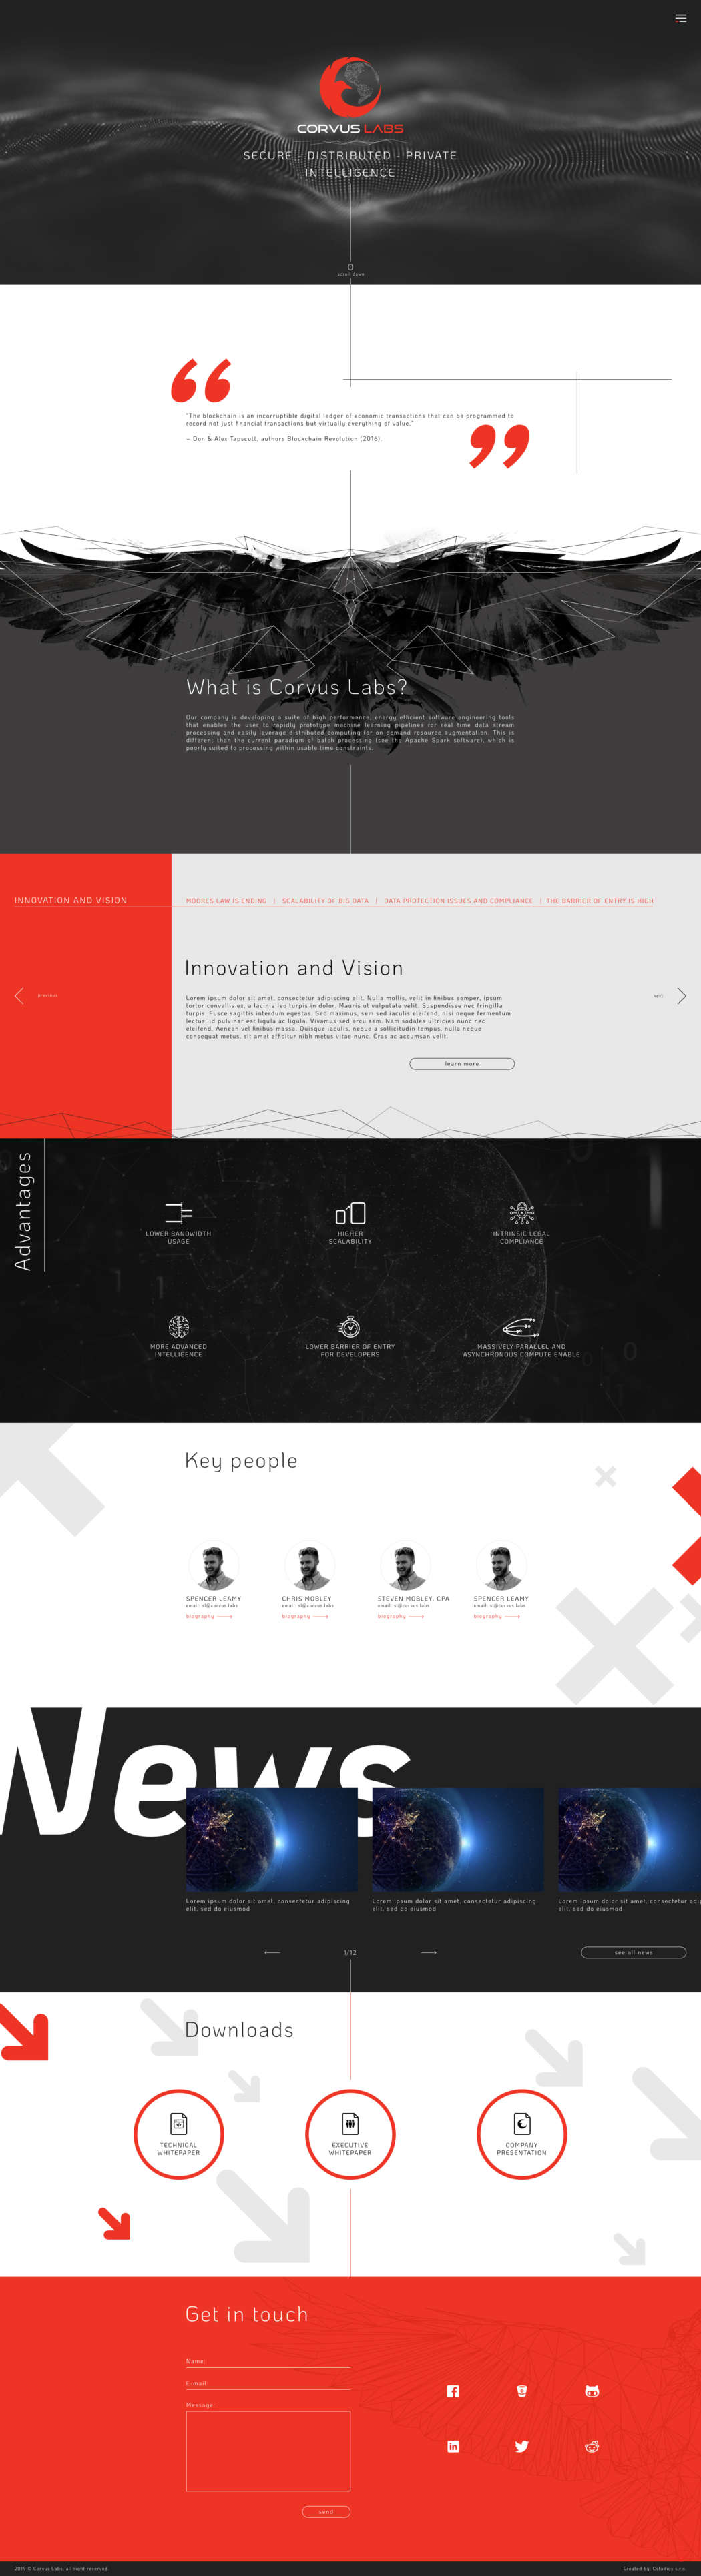 Corvus labs - webdesign | Grafikerik